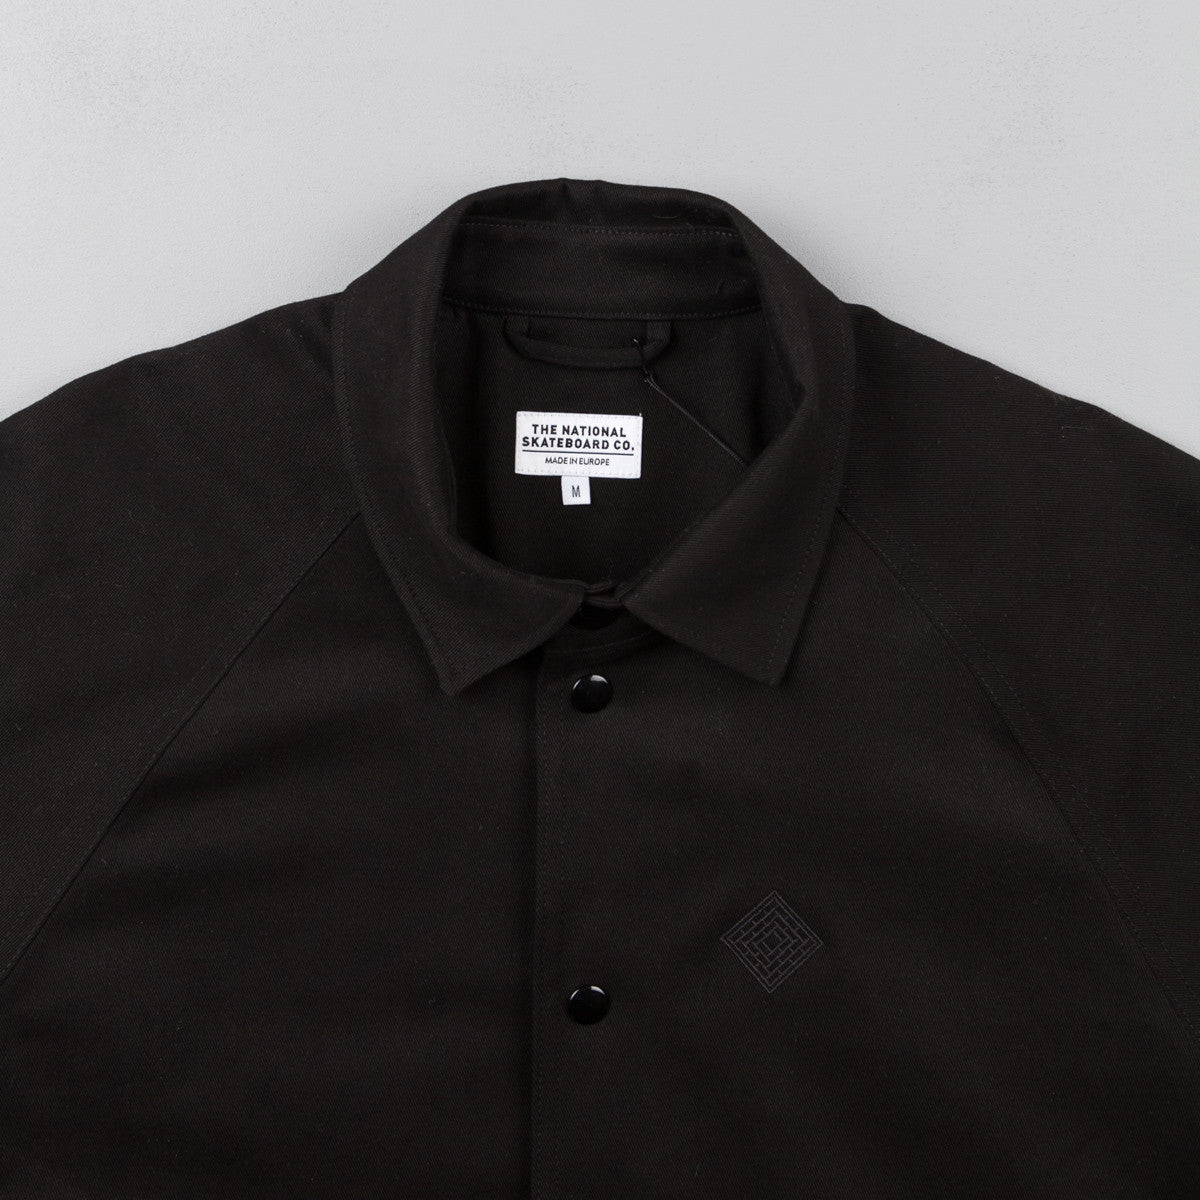 The National Skateboard Co Classic Jacket - Black